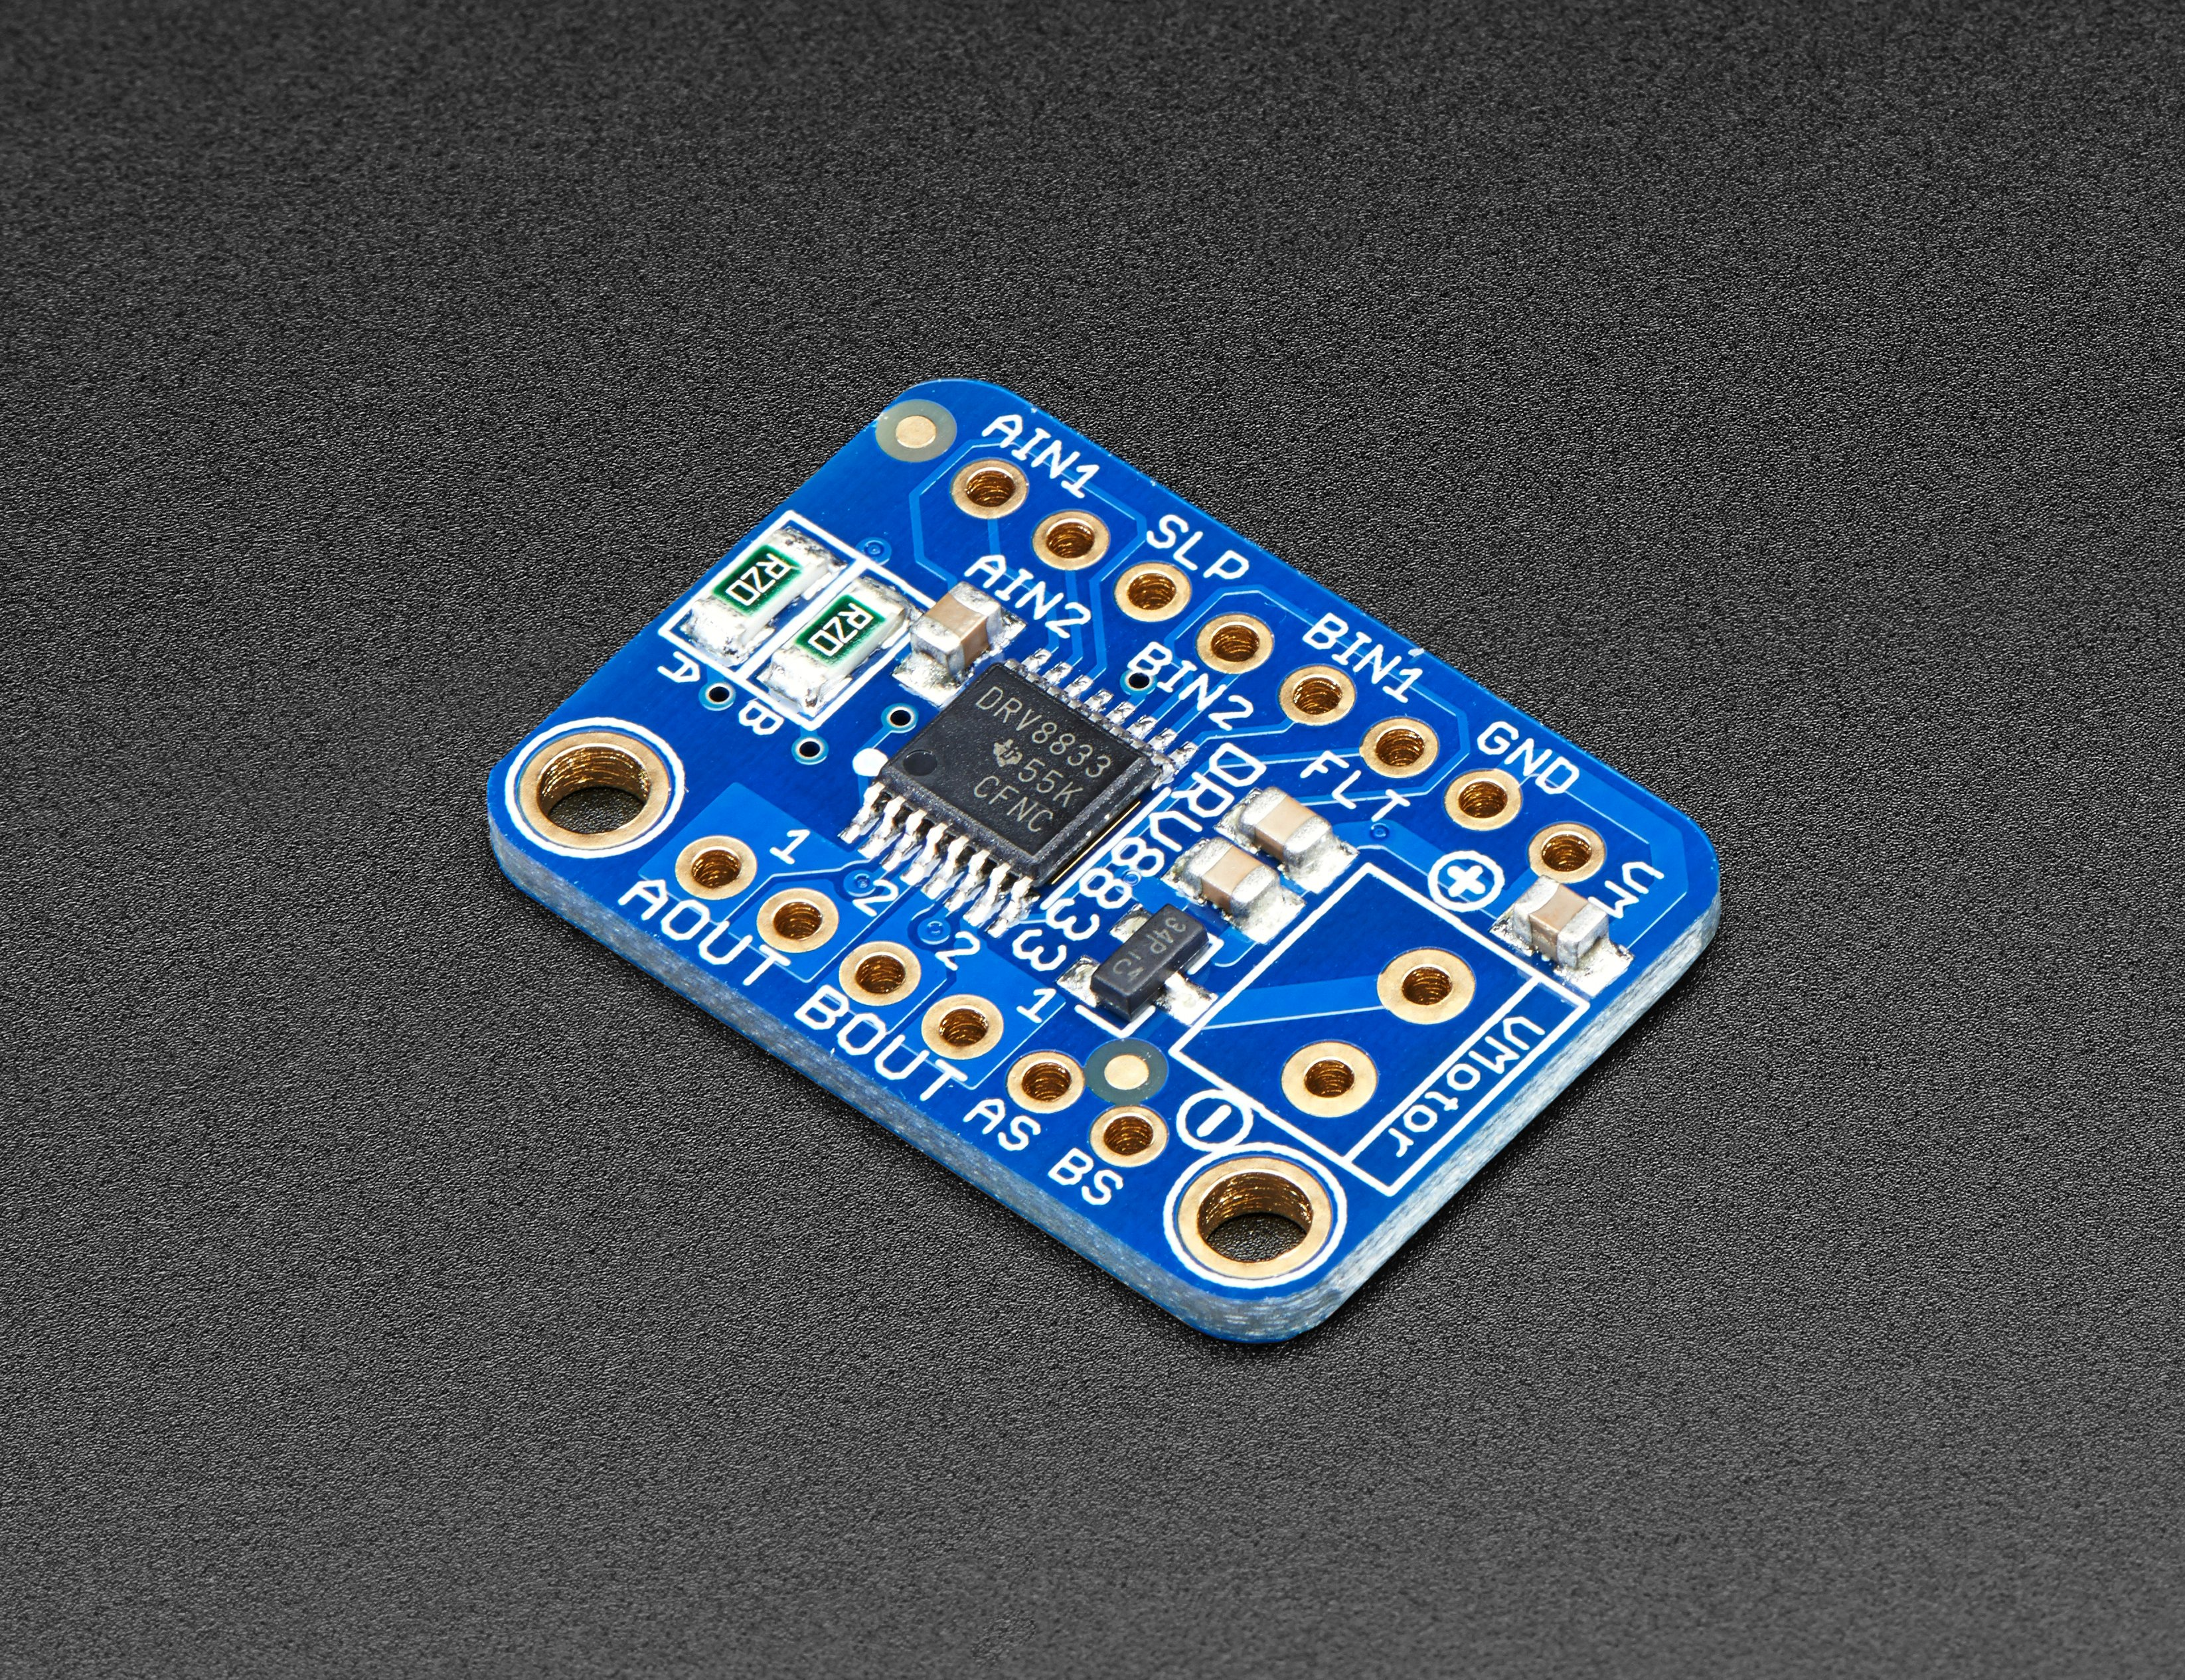 adafruit_products_3297_iso_ORIG.jpg